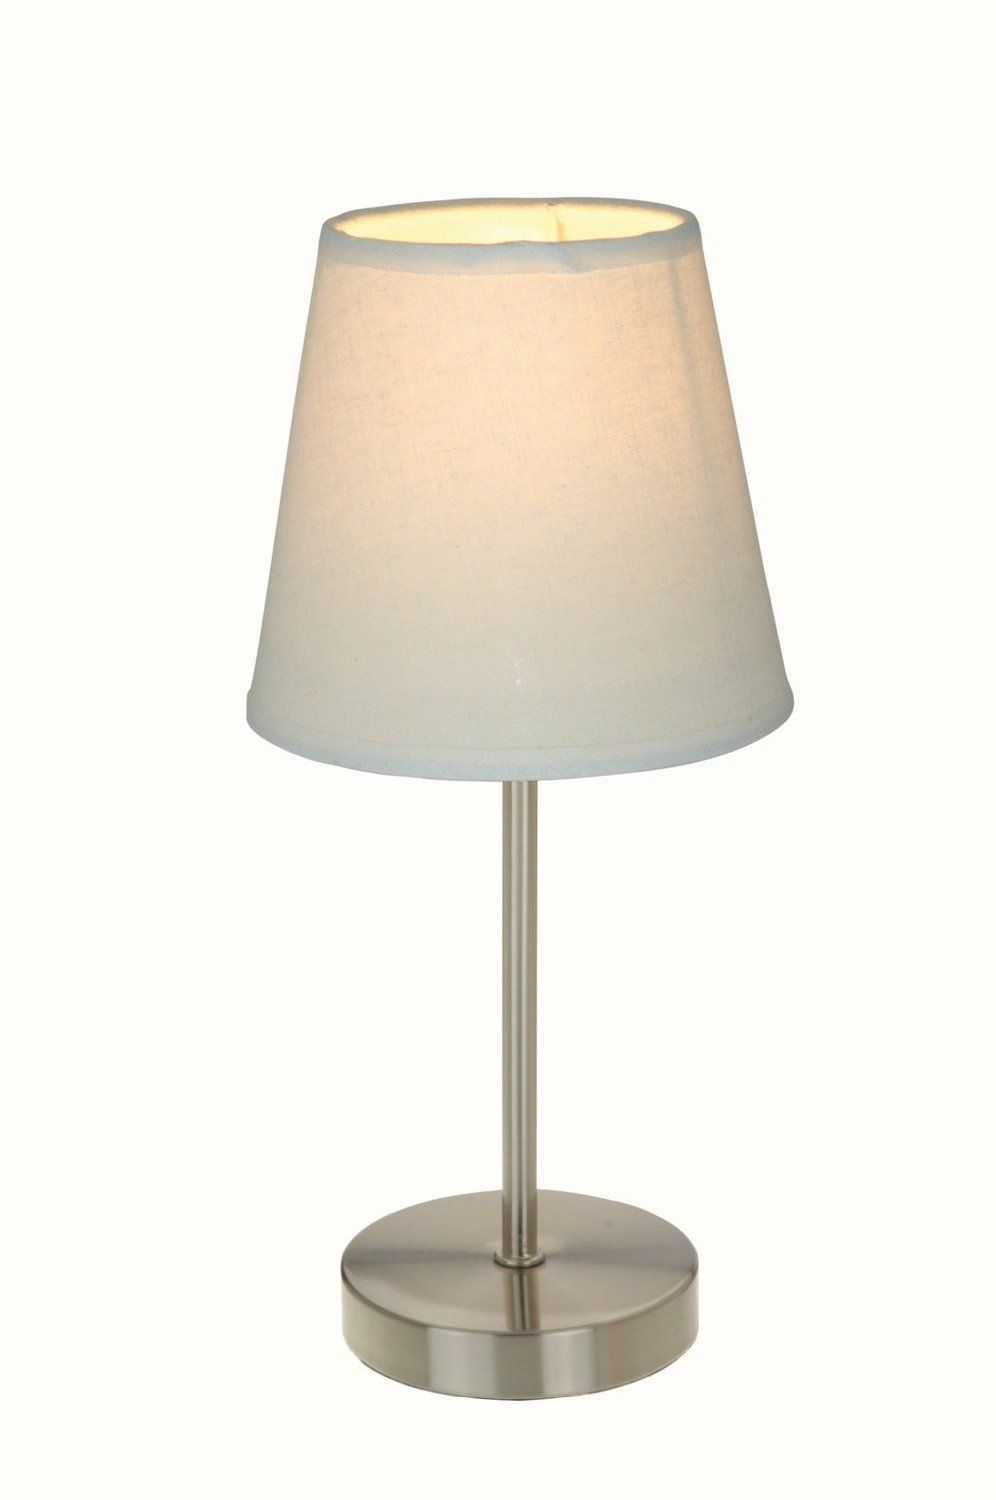 This would be adorable on a desk or workspace home decor simple designs sand nickel mini basic table lamp with fabric shade white simple designs sand nickel mini basic table lamp with fabric shade white geotapseo Choice Image